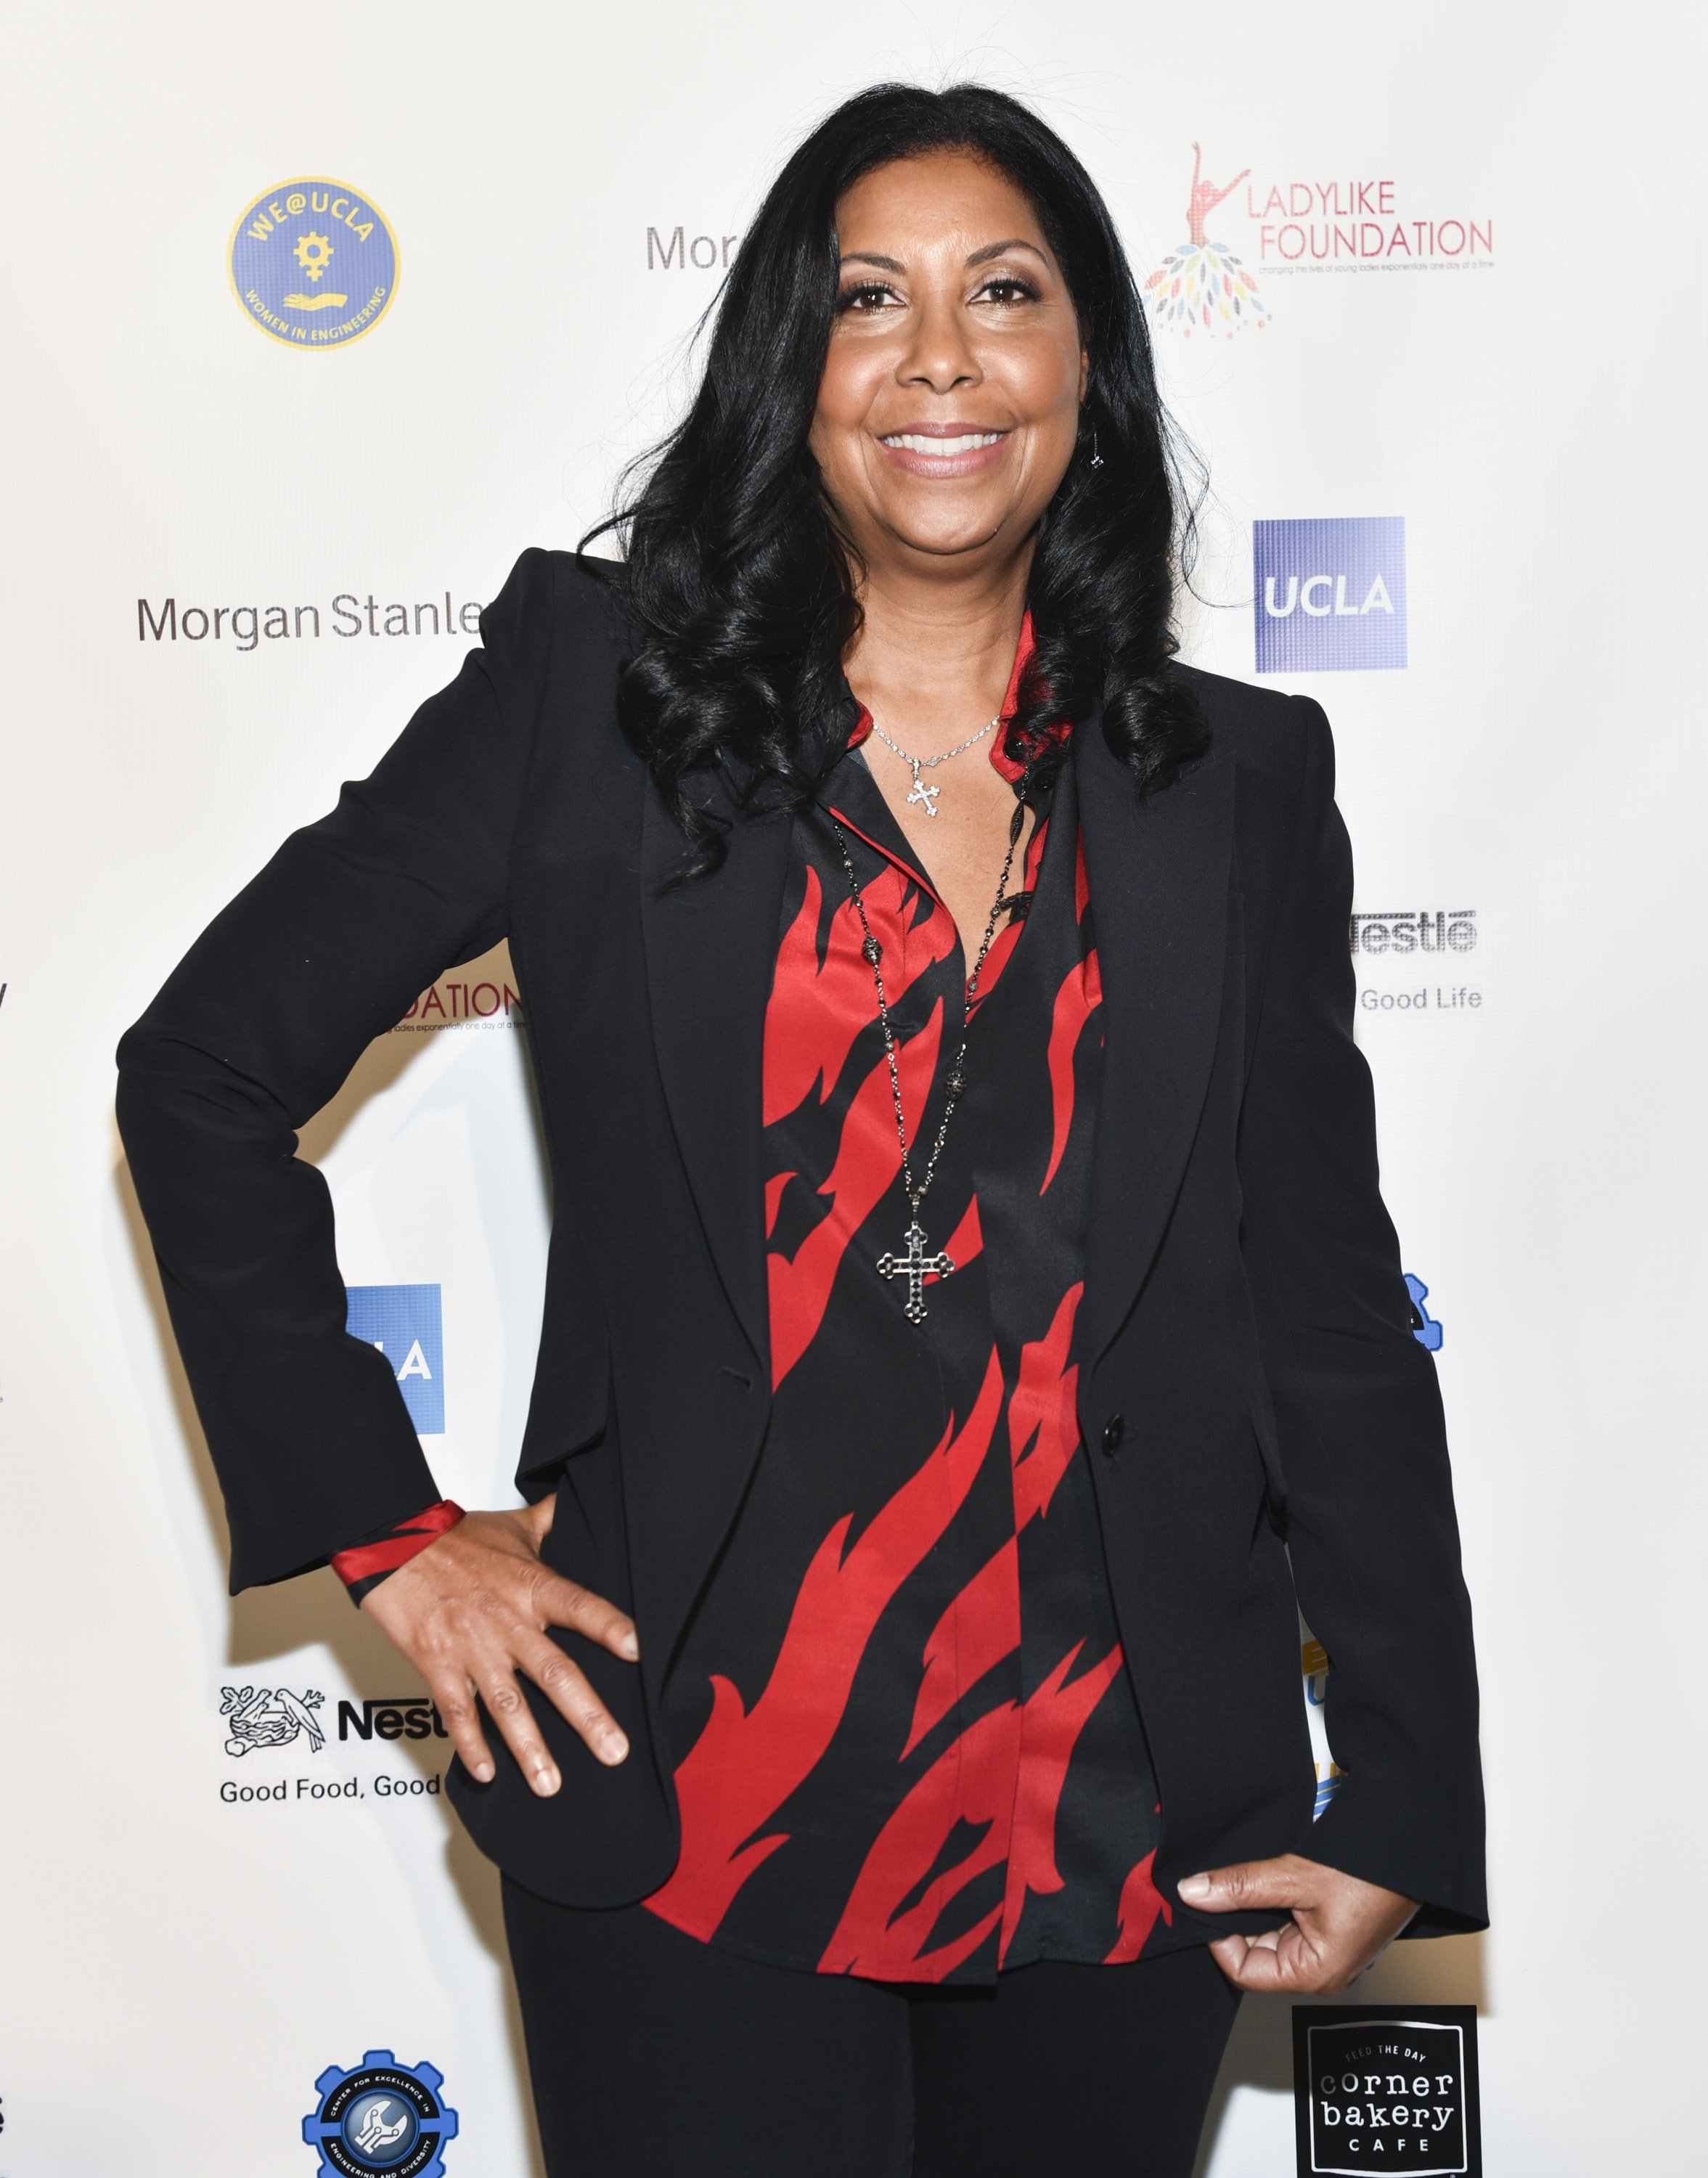 Cookie Johnson at the 6th Annual Ladylike Day at UCLA Panel and Program on Dec. 16, 2017 in California   Photo: Getty Images